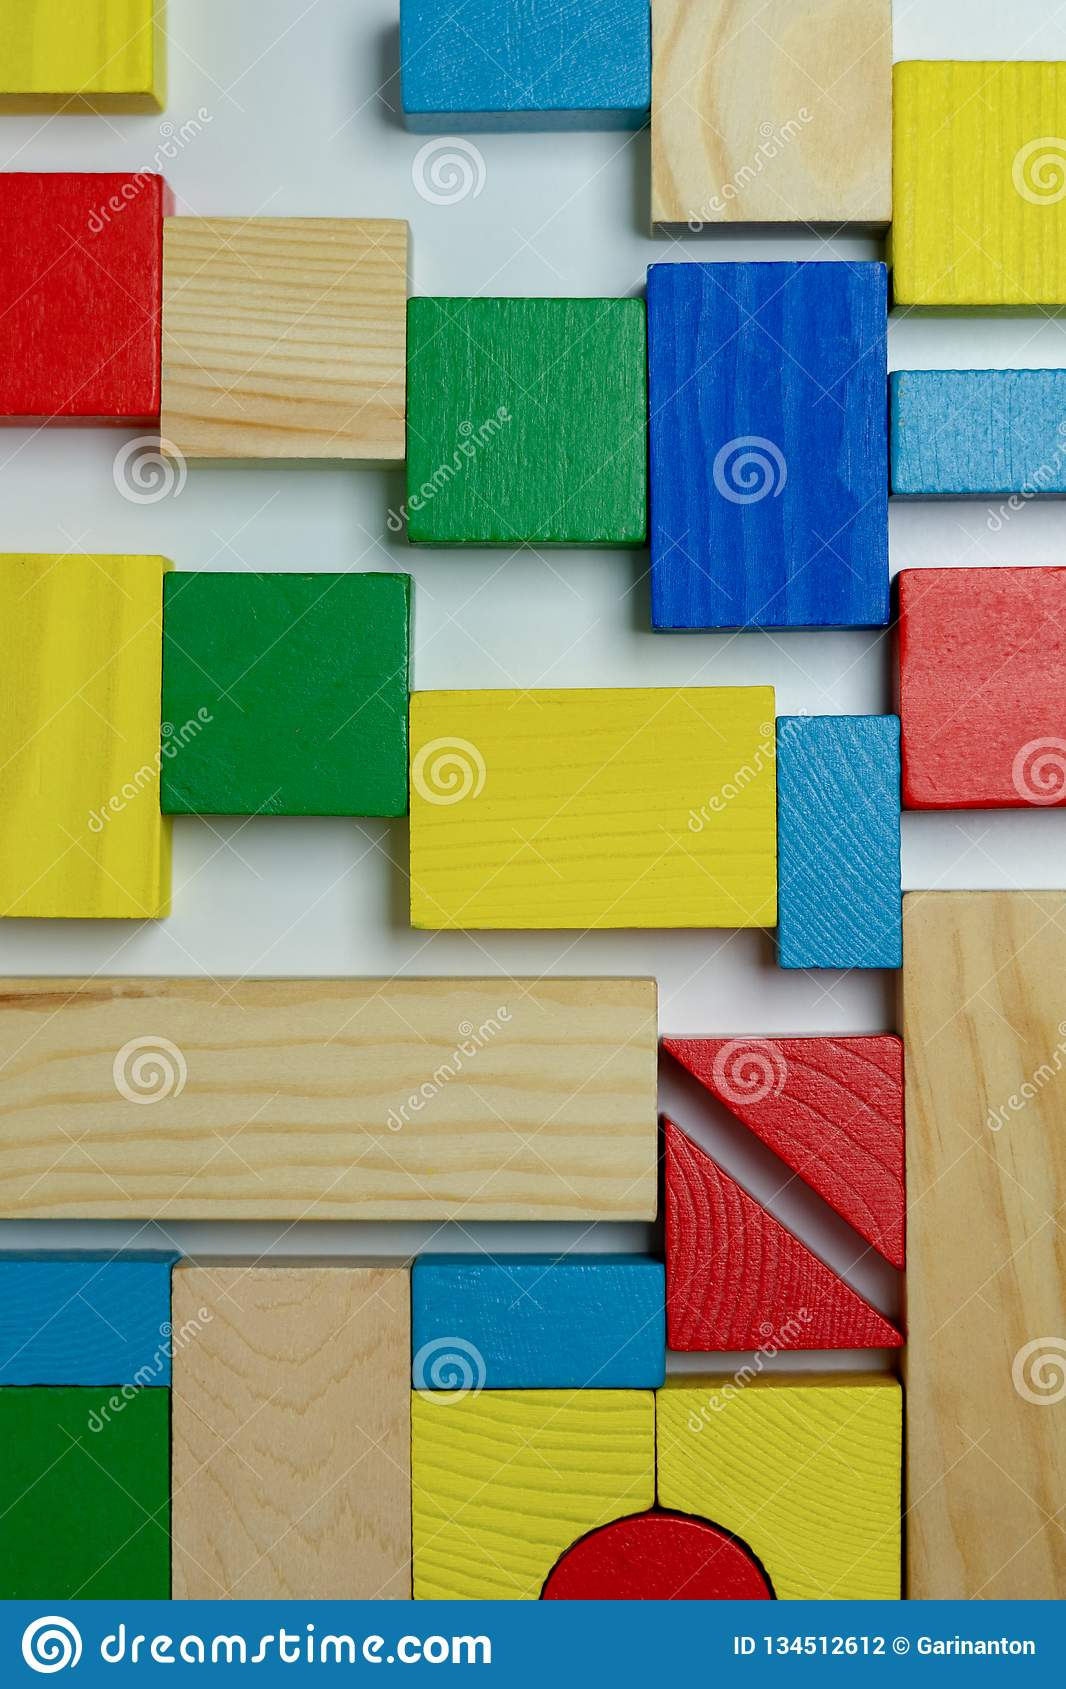 Arrangement of different colorful building bricks